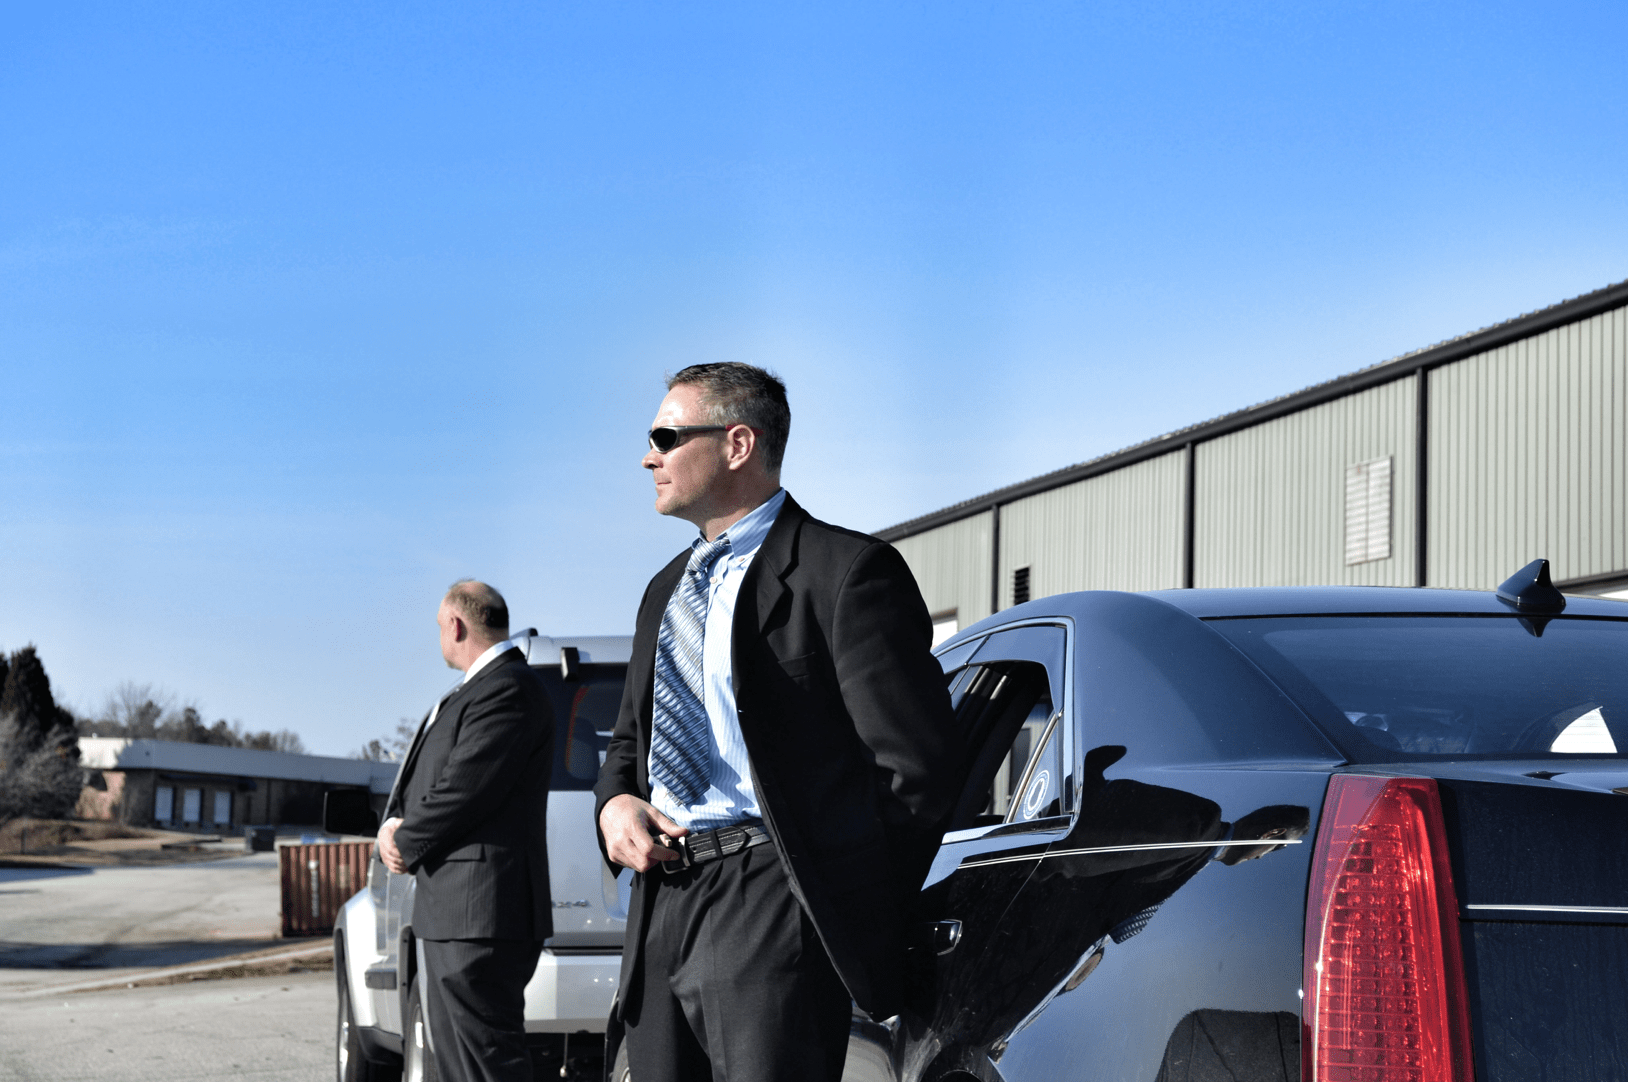 Executive Protection Consultants